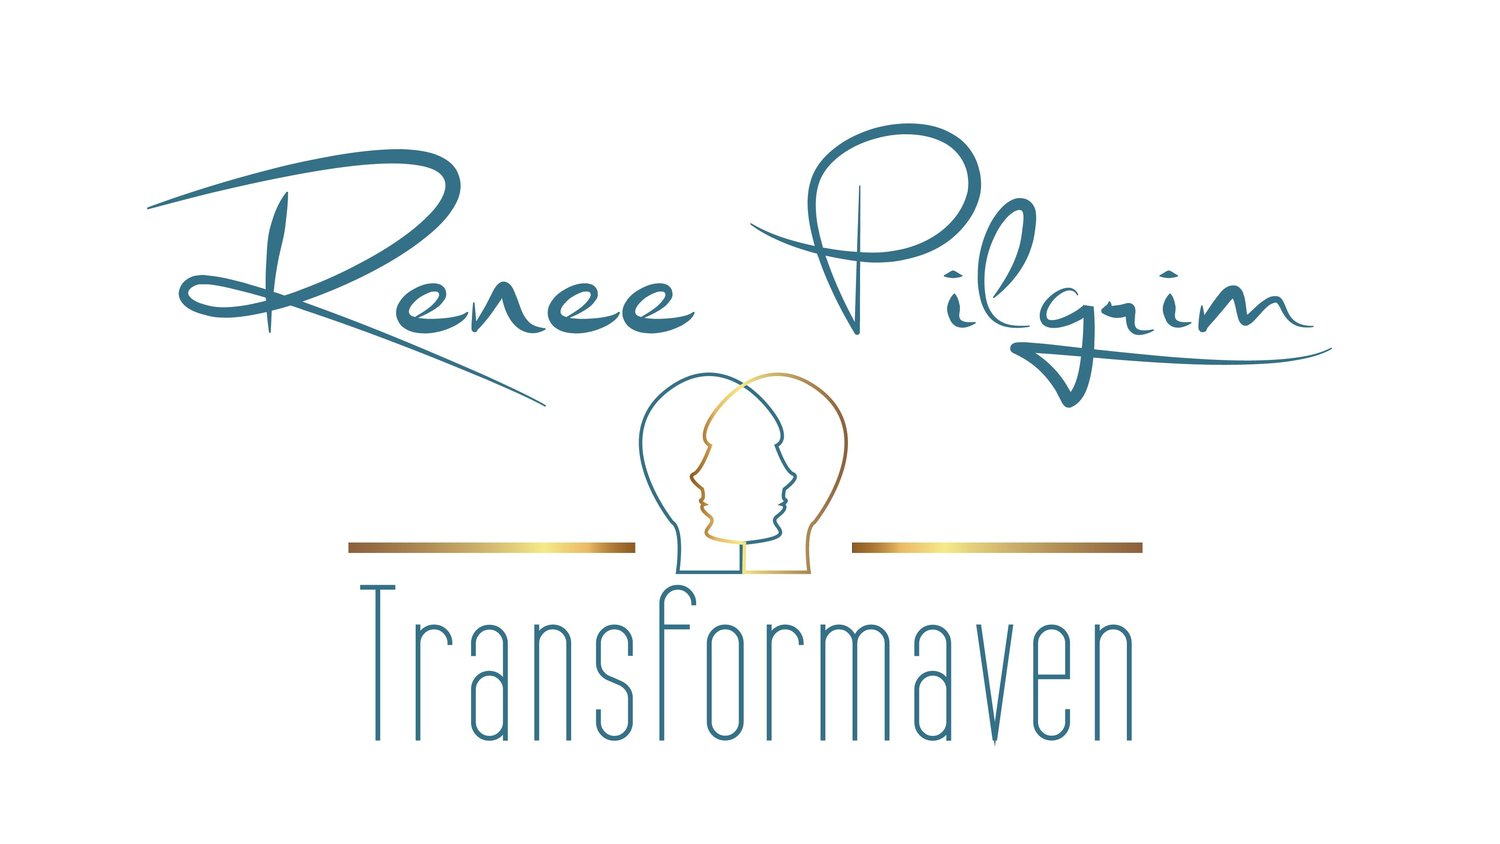 Renee Pilgrim Transformaven